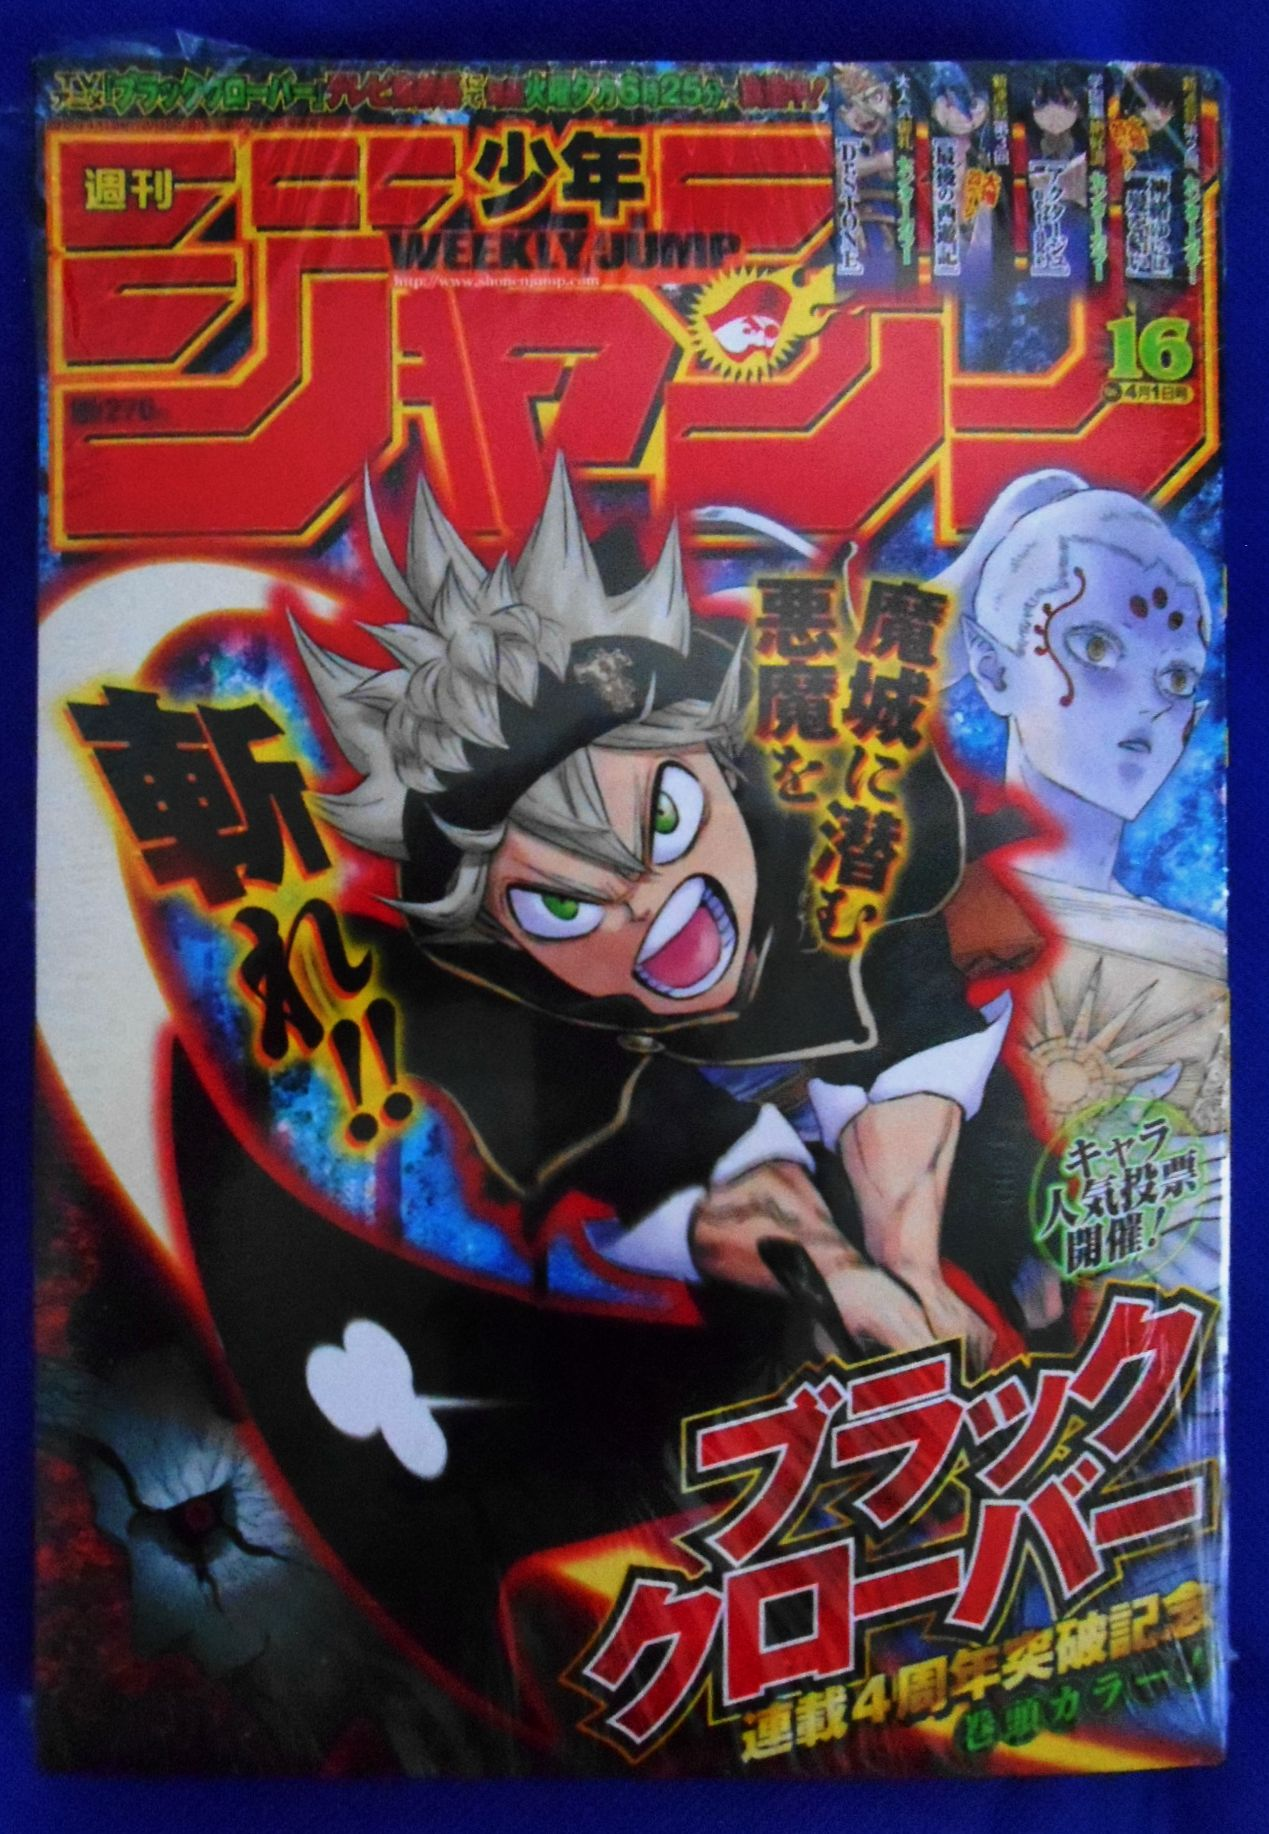 Weekly Shonen Jump 16, 2019 Issue Black clover manga